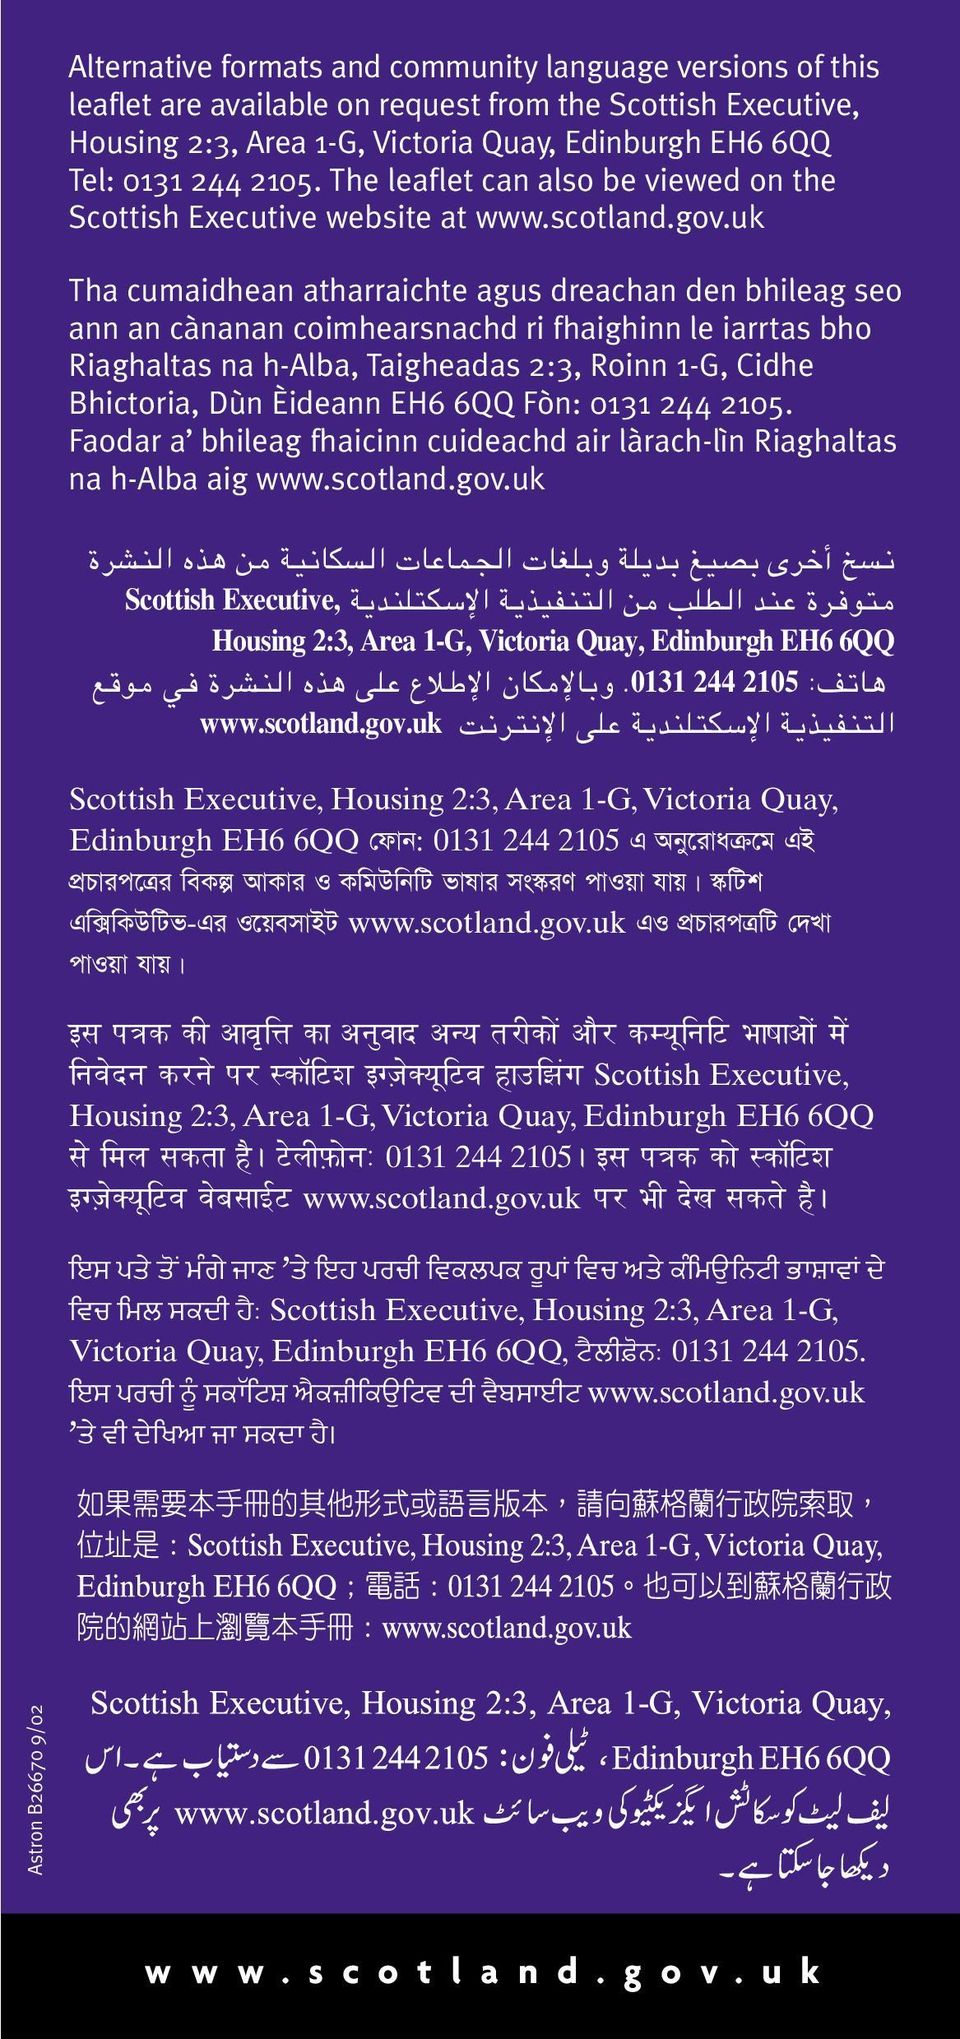 leaflet are available on request from the Scottish Executive, Housing 2:3, Area 1-G, Victoria Quay, Edinburgh EH6 6QQ Tel: 0131 244 2105.